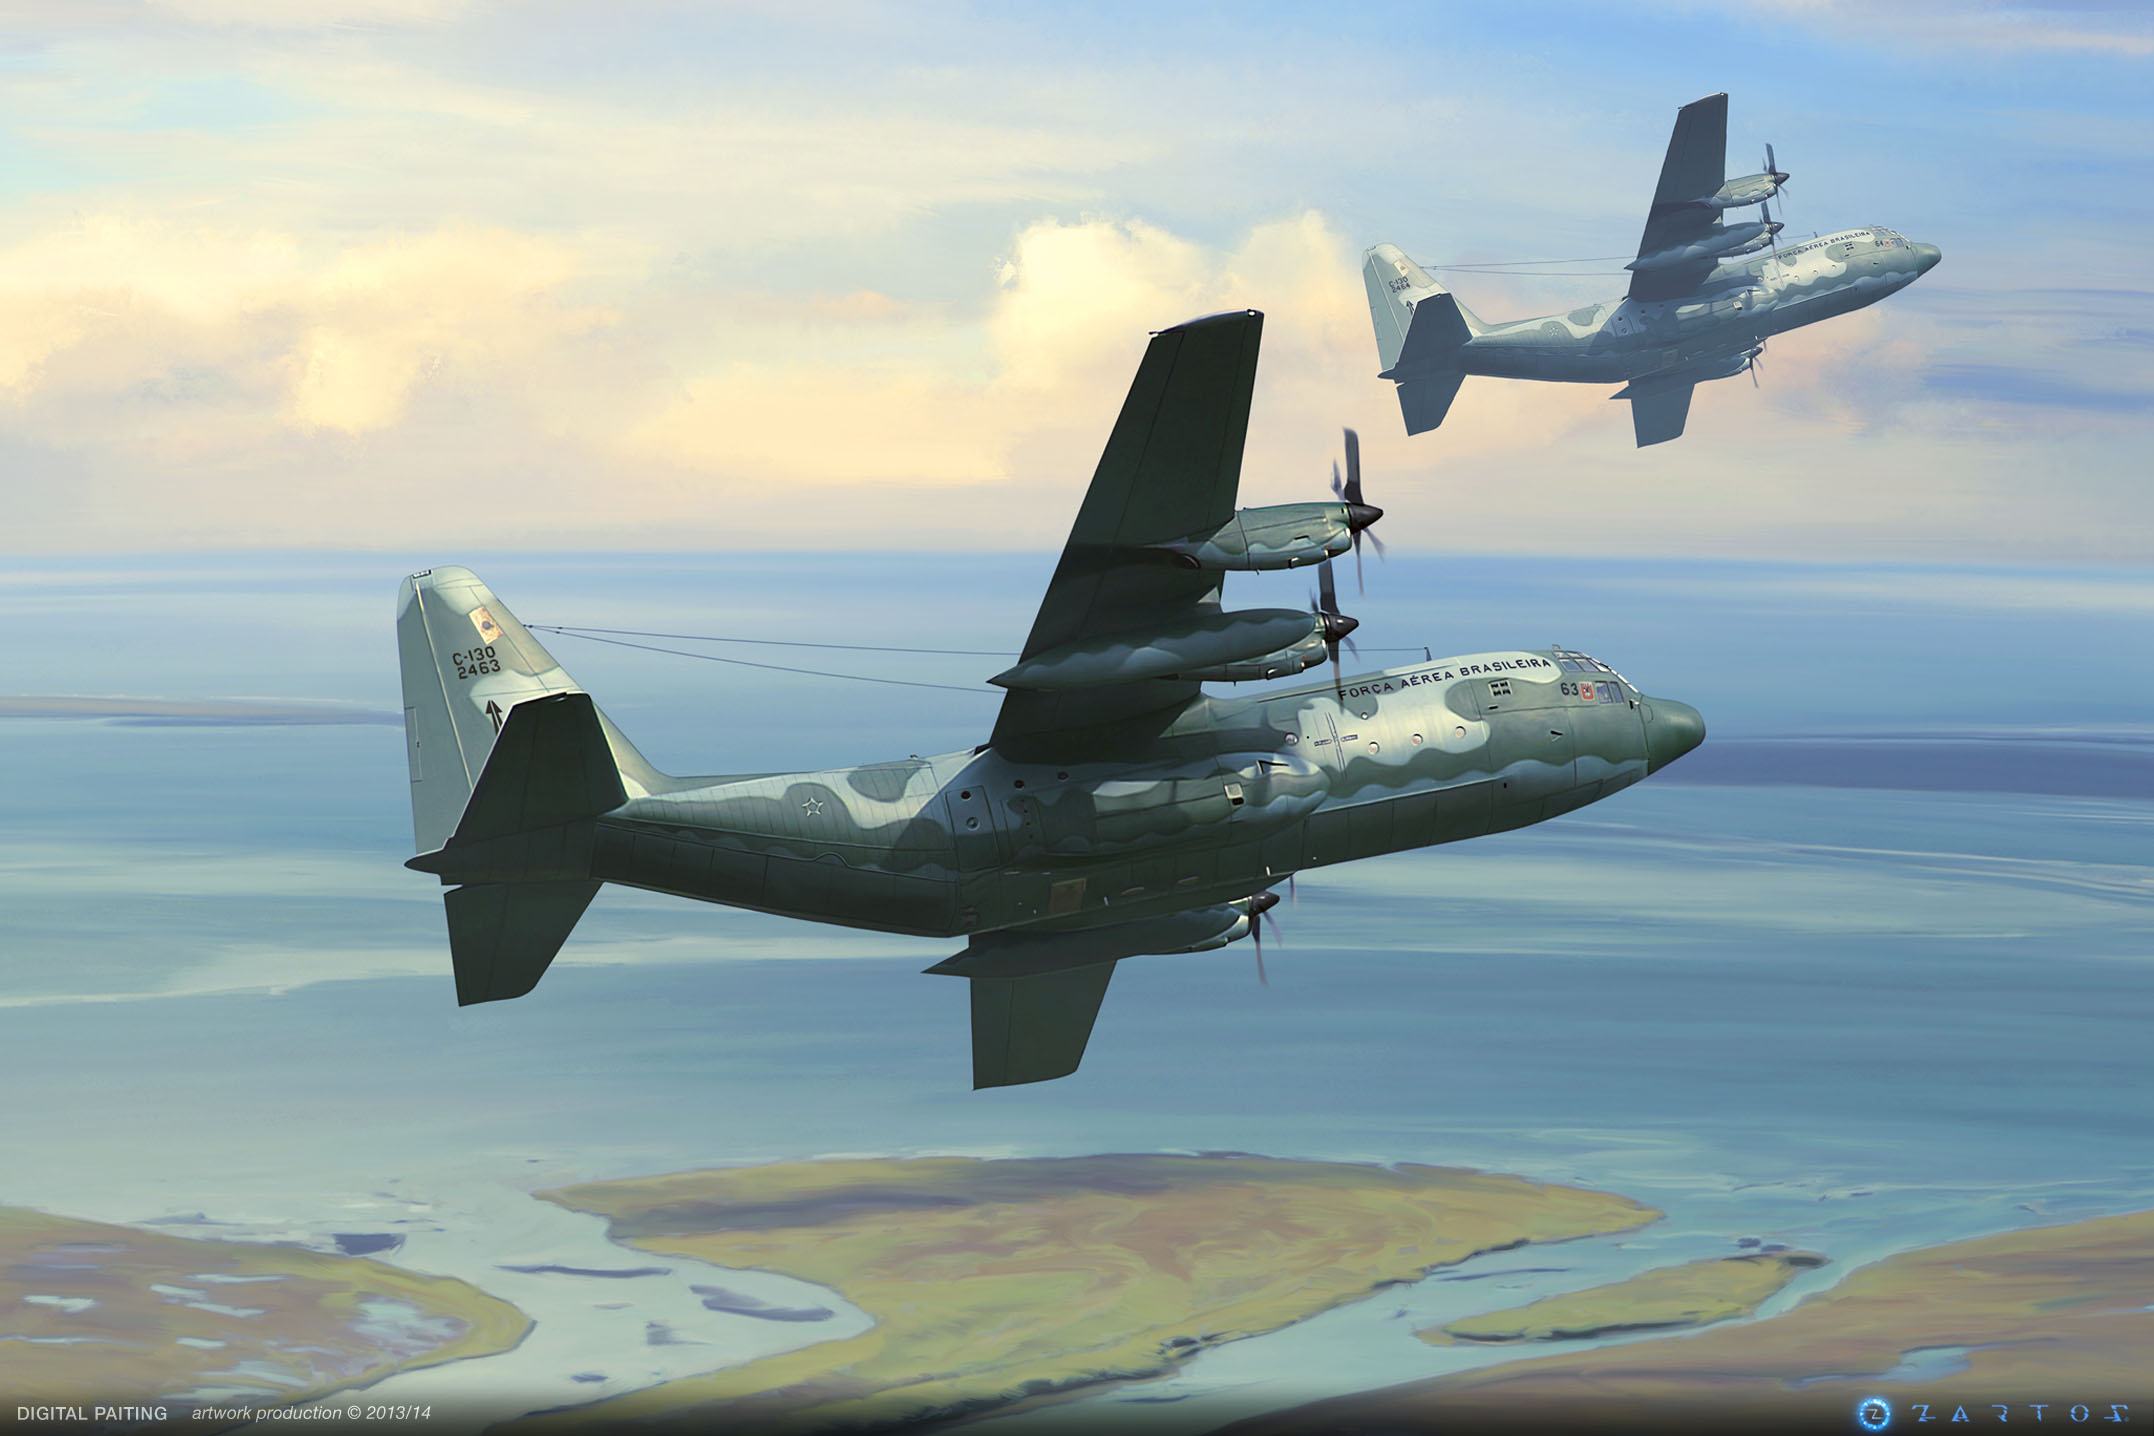 Digital paintings - FAB aircrafts